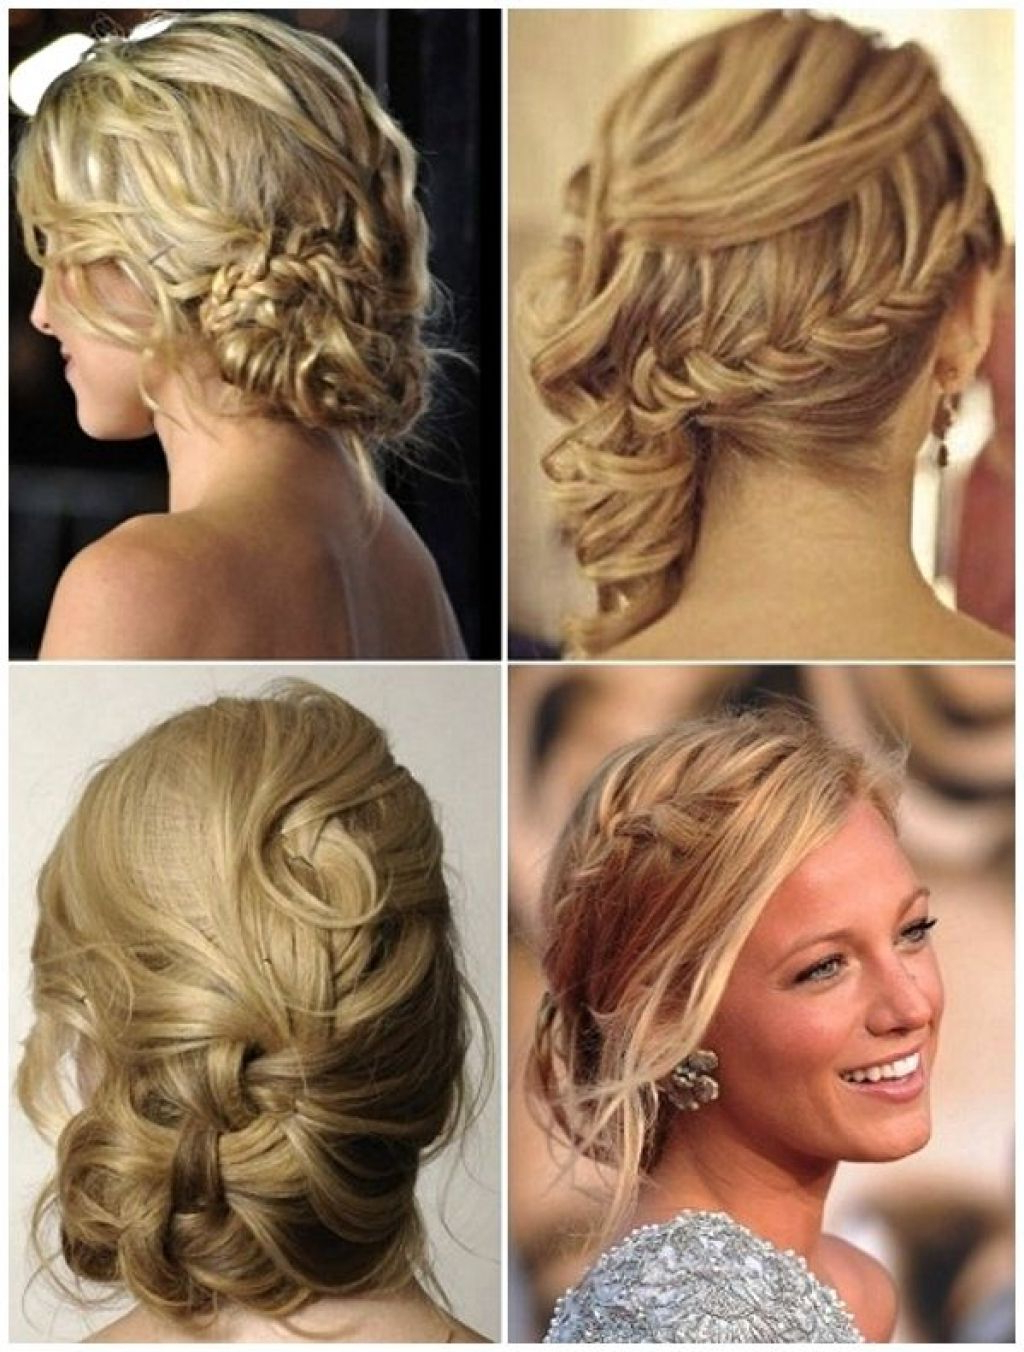 Hairstyle For Wedding Guest Brides Hairstyle Ideas Short Hair Inside Hairstyles For A Wedding Guest With Short Hair (View 6 of 25)